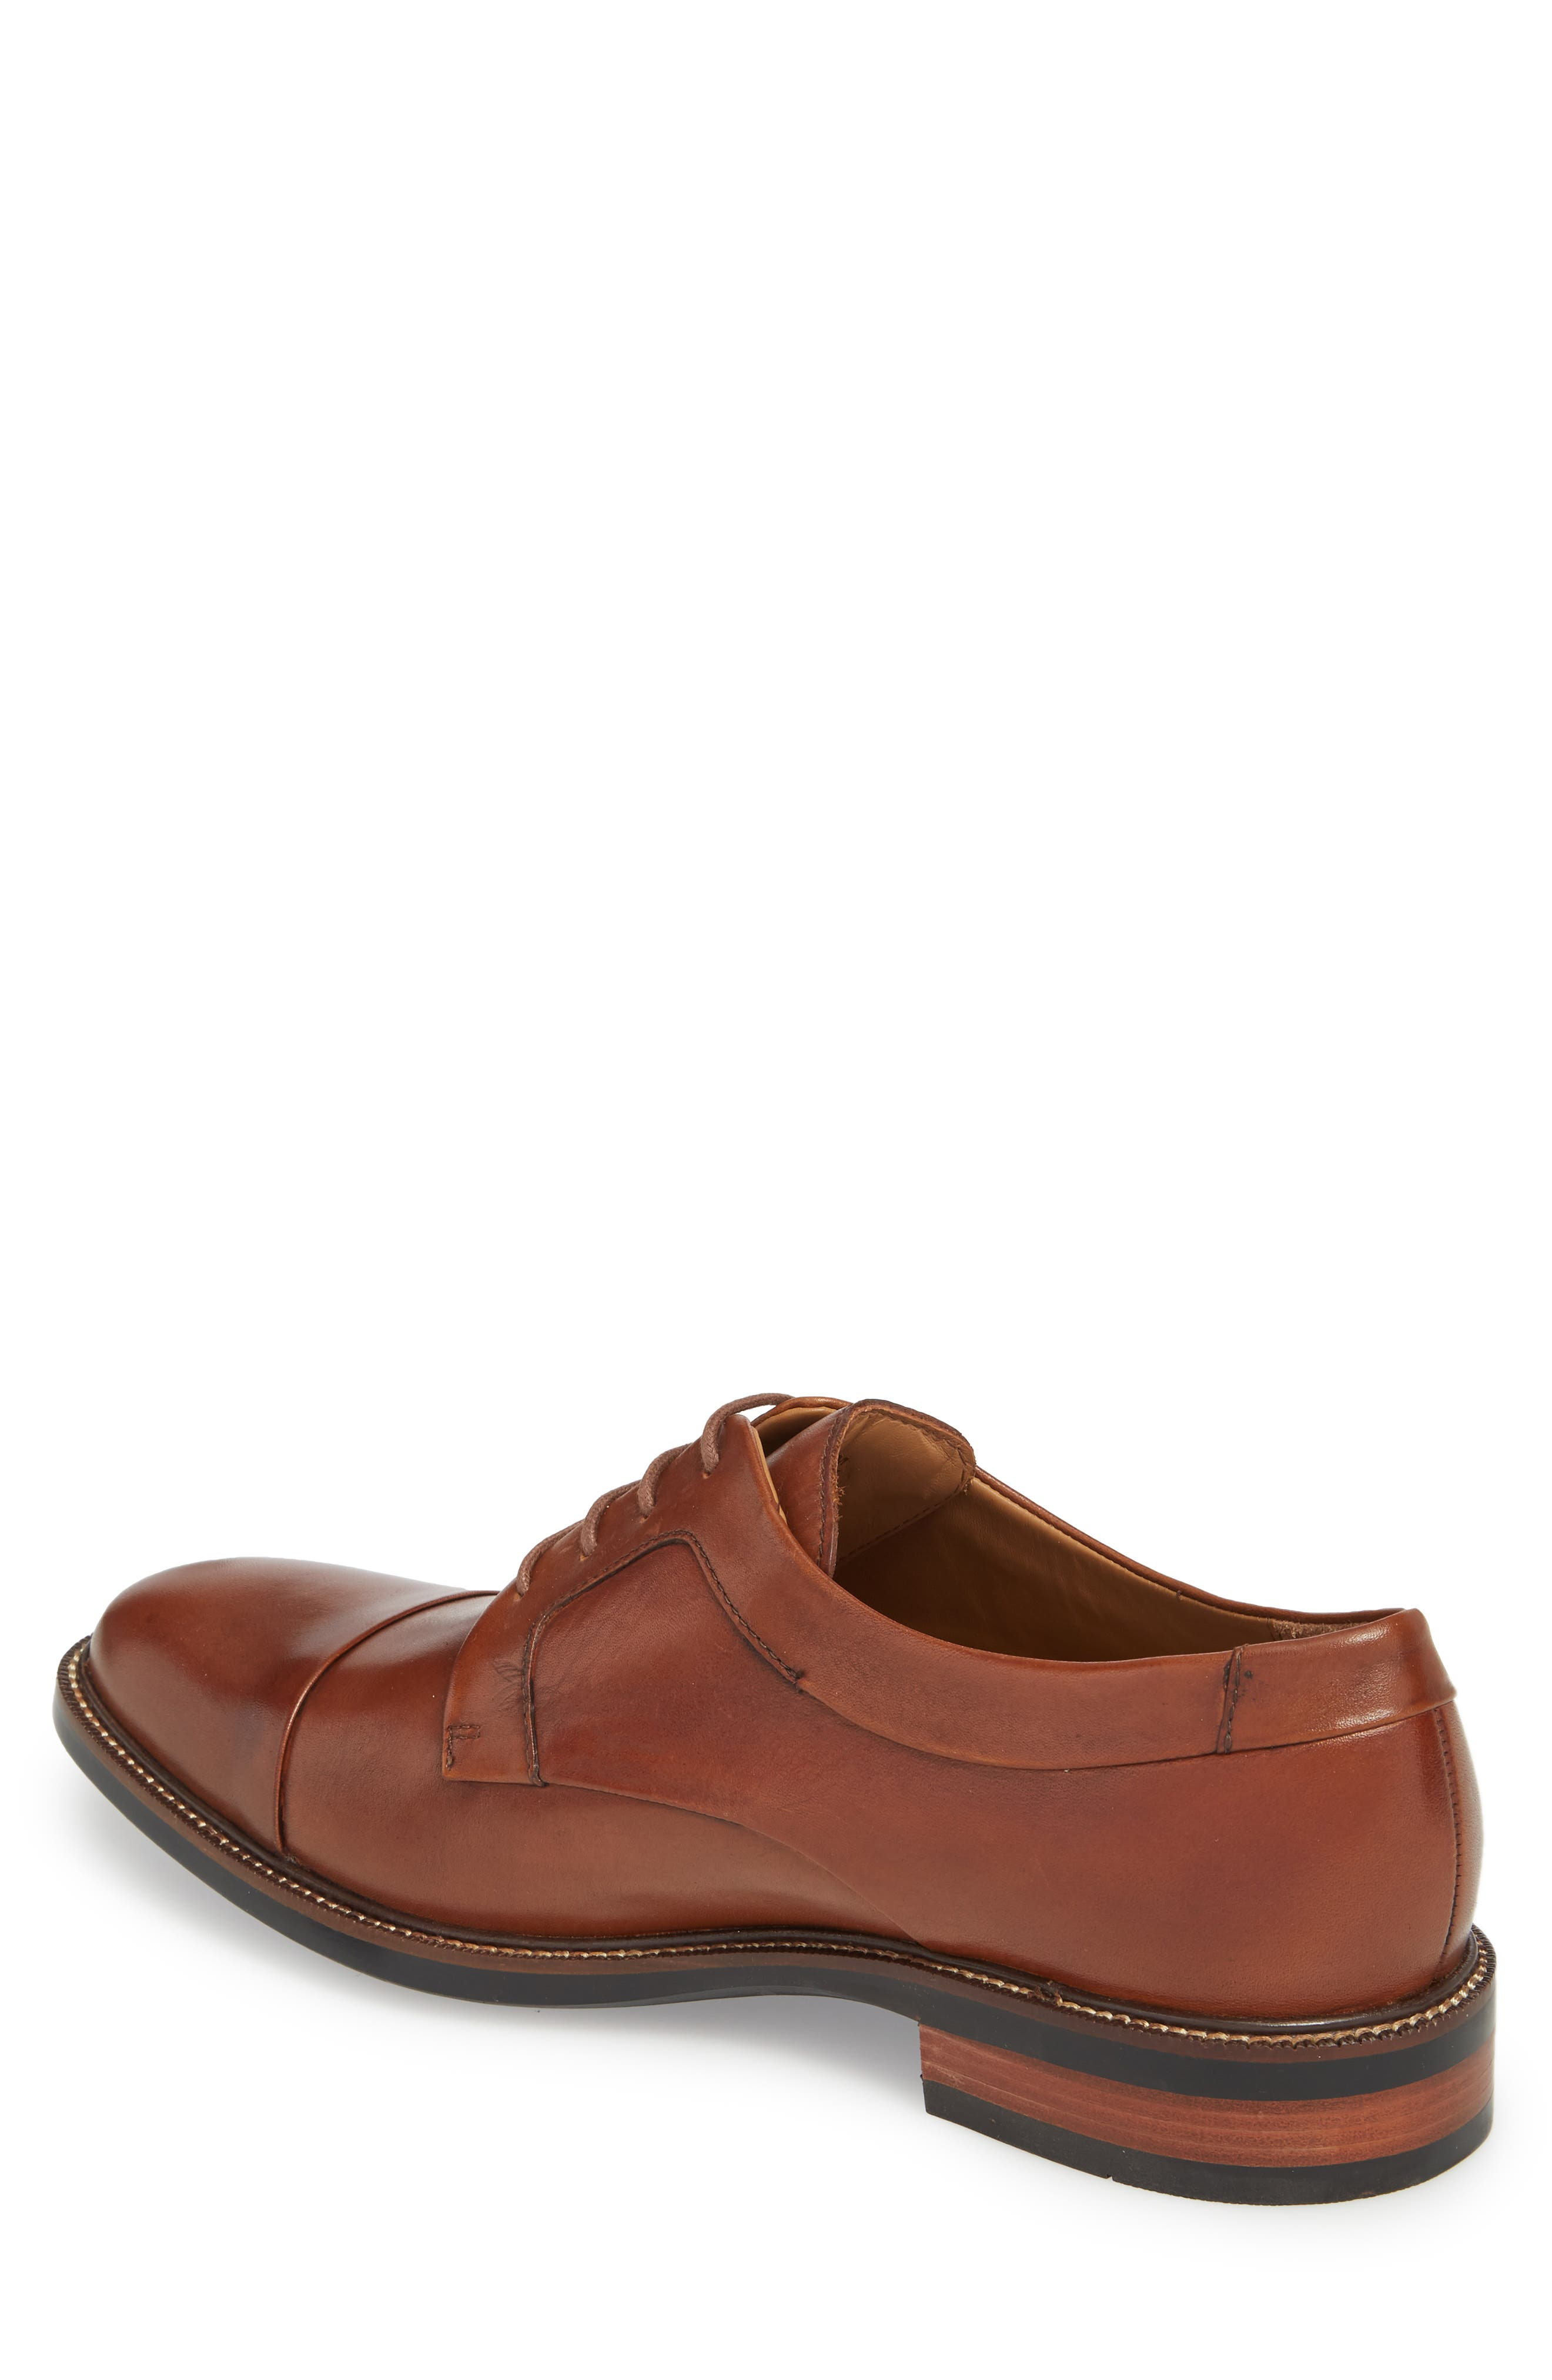 Warren Cap Toe Derby,                             Alternate thumbnail 2, color,                             BRITISH TAN LEATHER